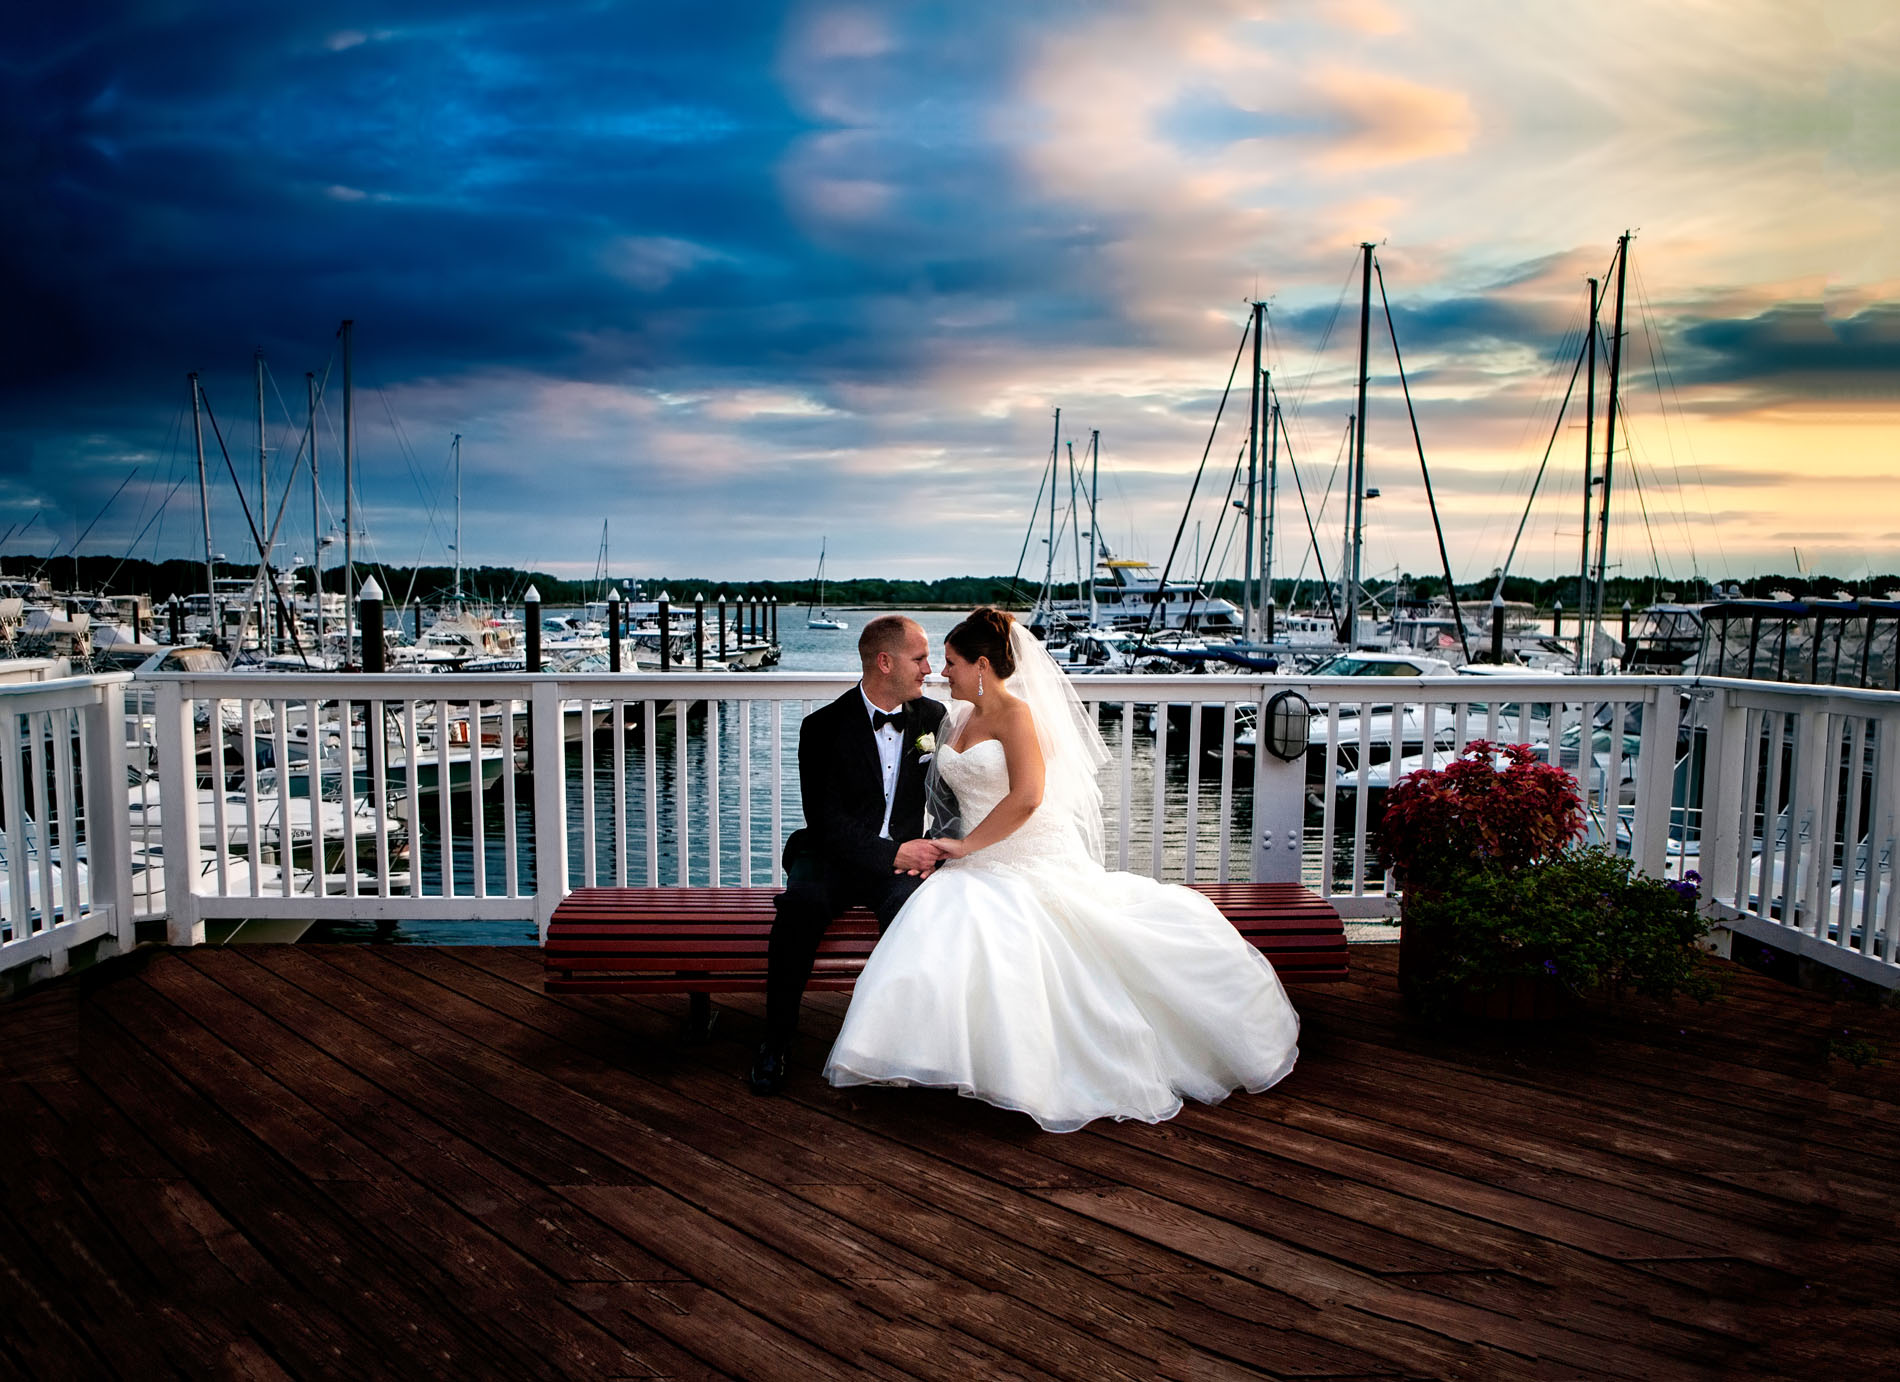 Favorite Wedding Pictures from Wentworth - couple at Marina